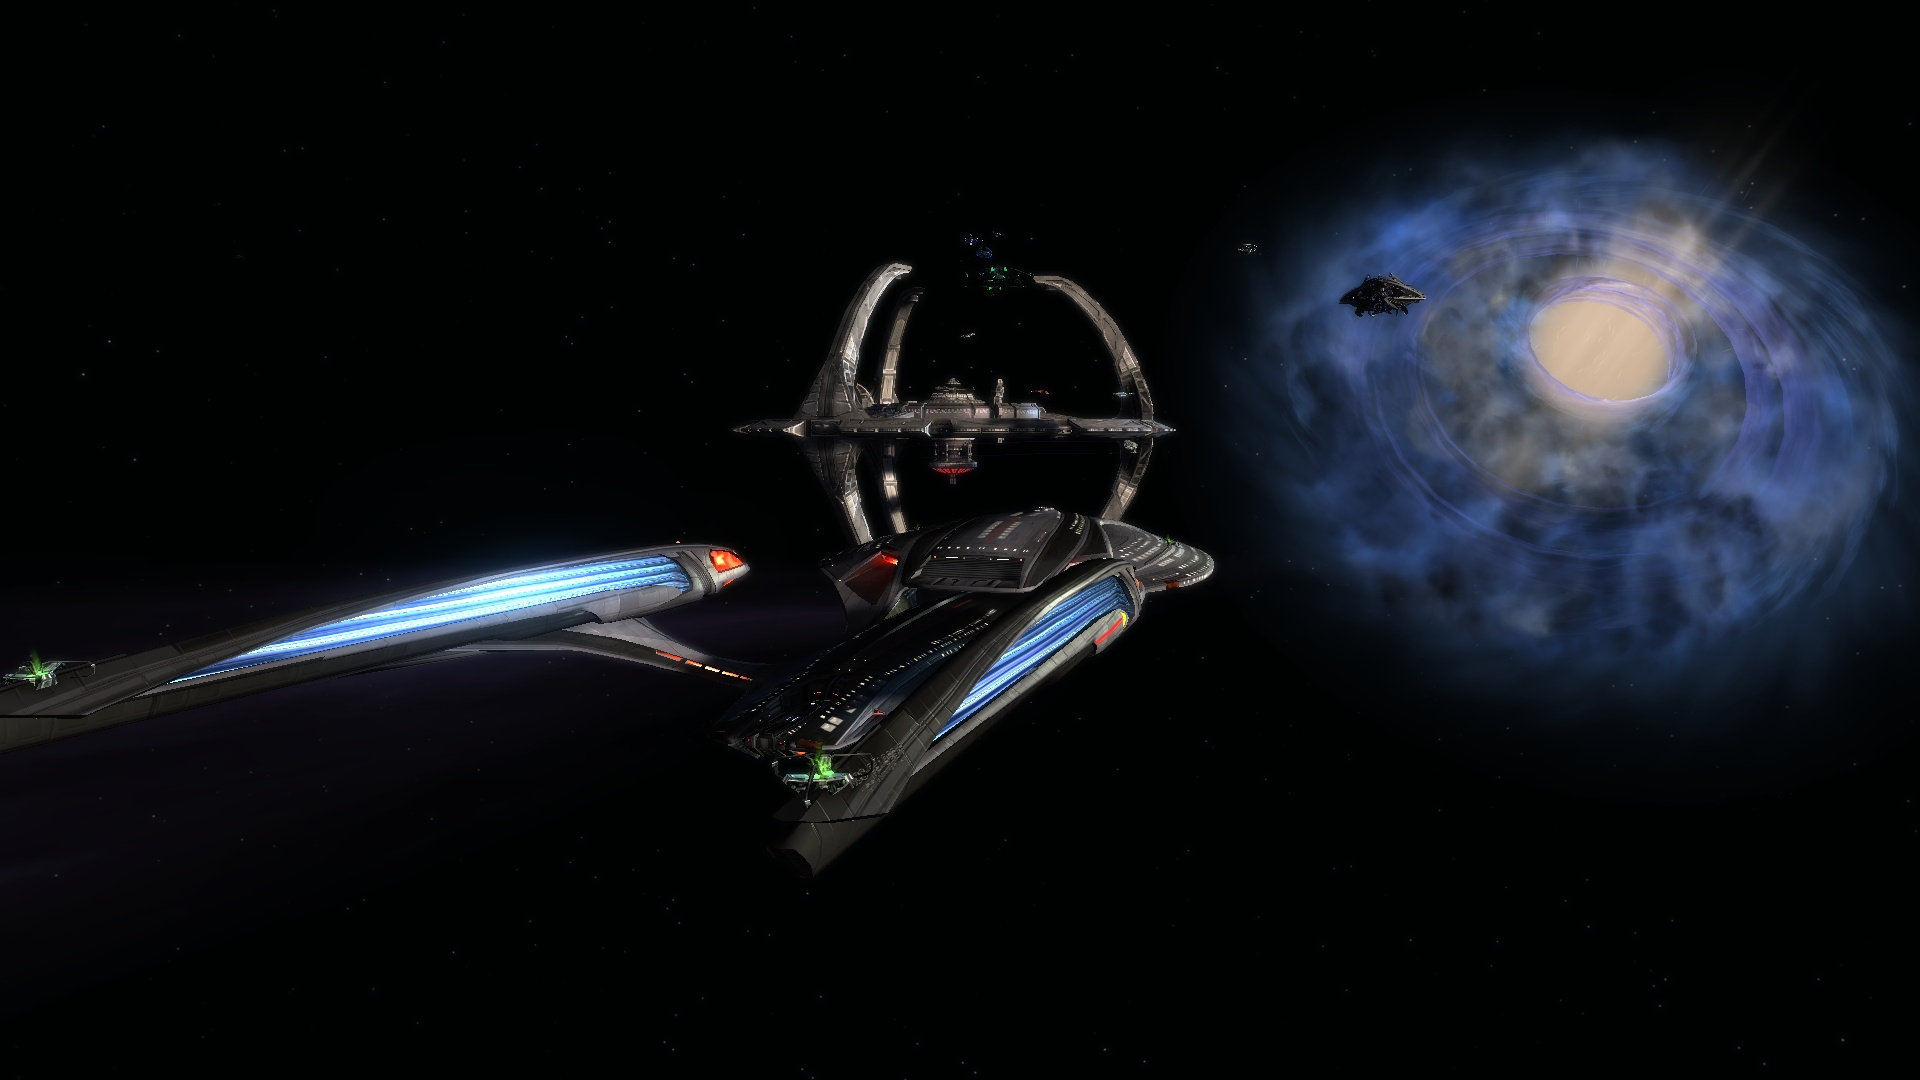 DEEP SPACE NINE AND THE CELESTIAL TEMPLE